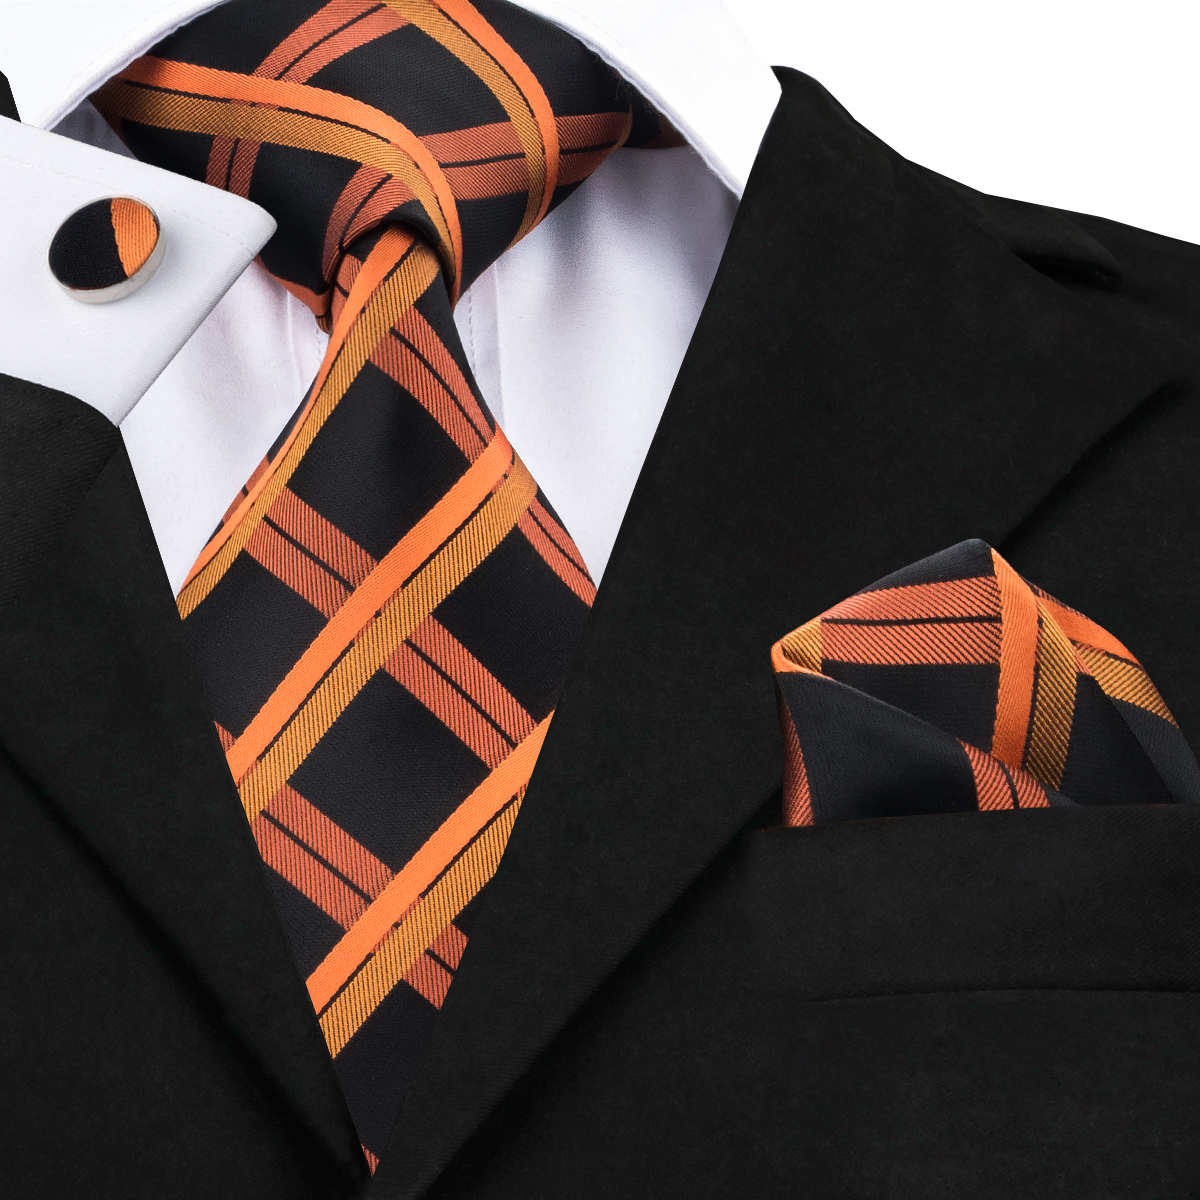 2017 Fashion Orange&white Stripe Tie+Hanky+Cufflinks 100%Silk Jacquard Neckties Ties For Men Formal Business Wedding Party C-262